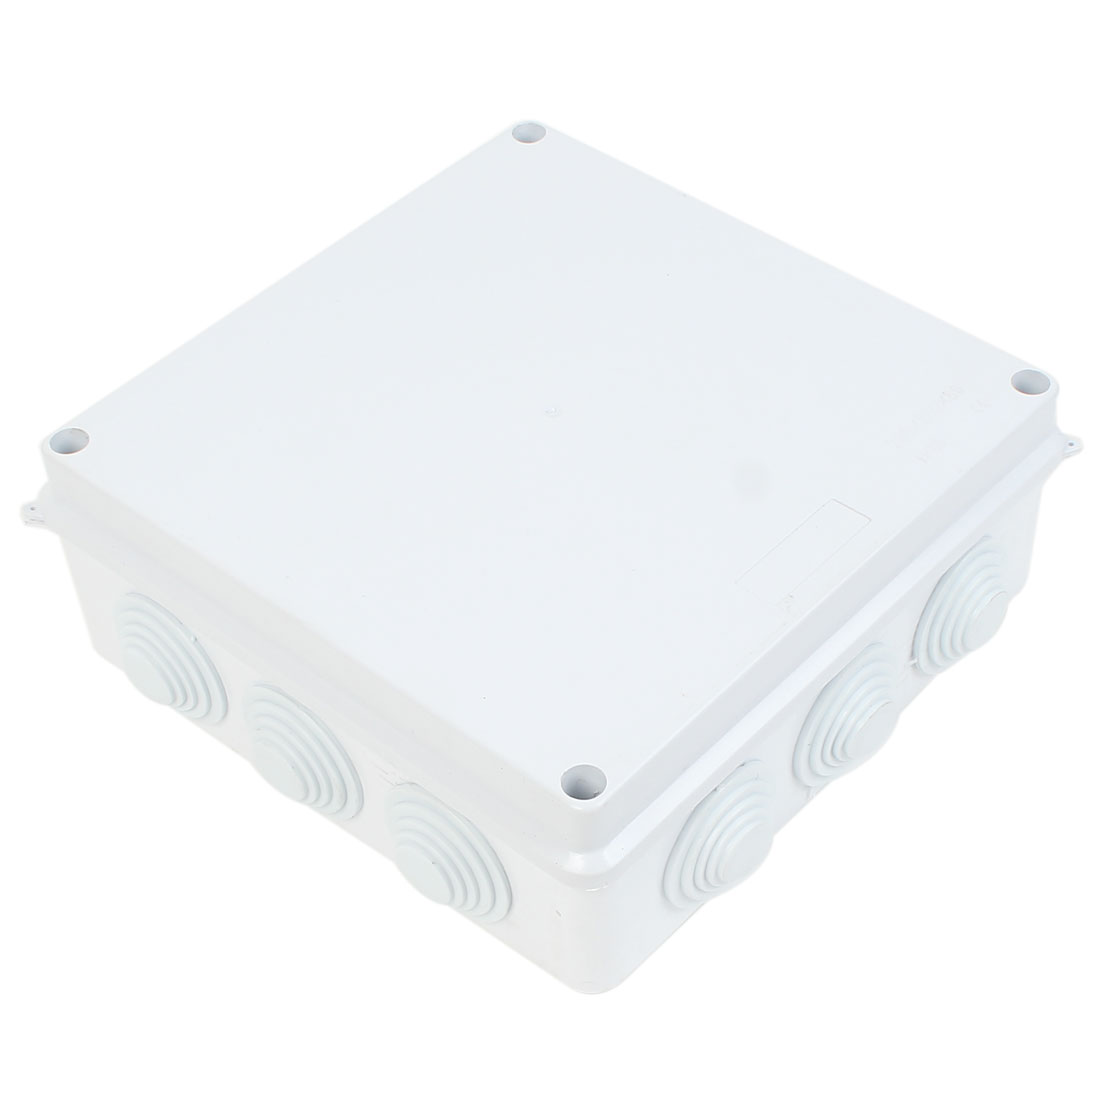 White ABS Dustproof IP65 Sealed Electrical Junction Box Case 200x200x80mm